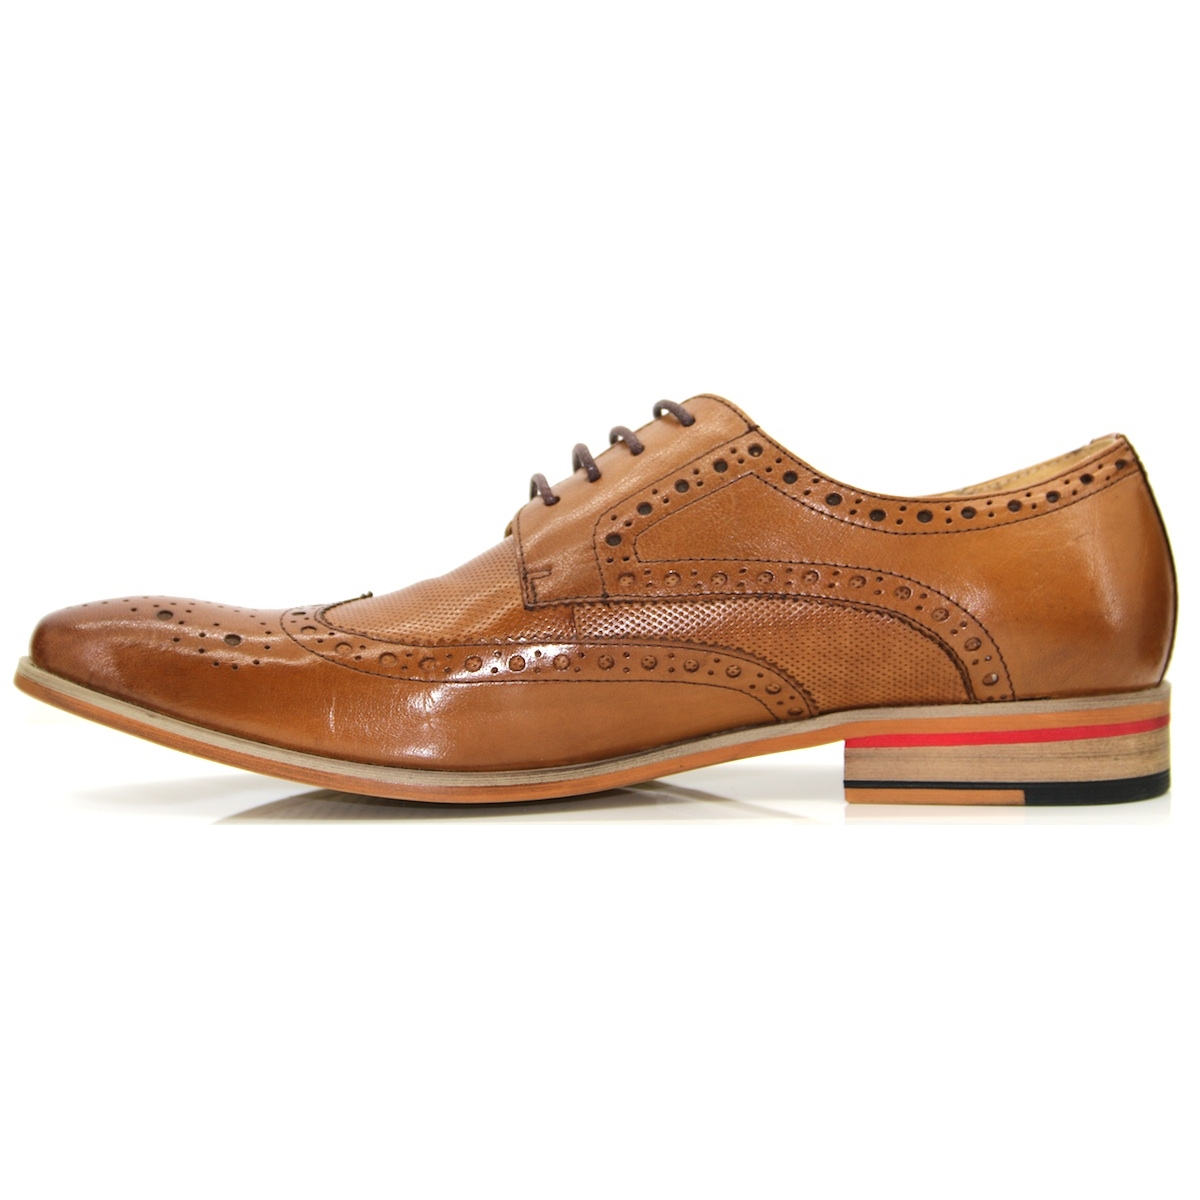 nateby paolo vandini brogue www panache shoes